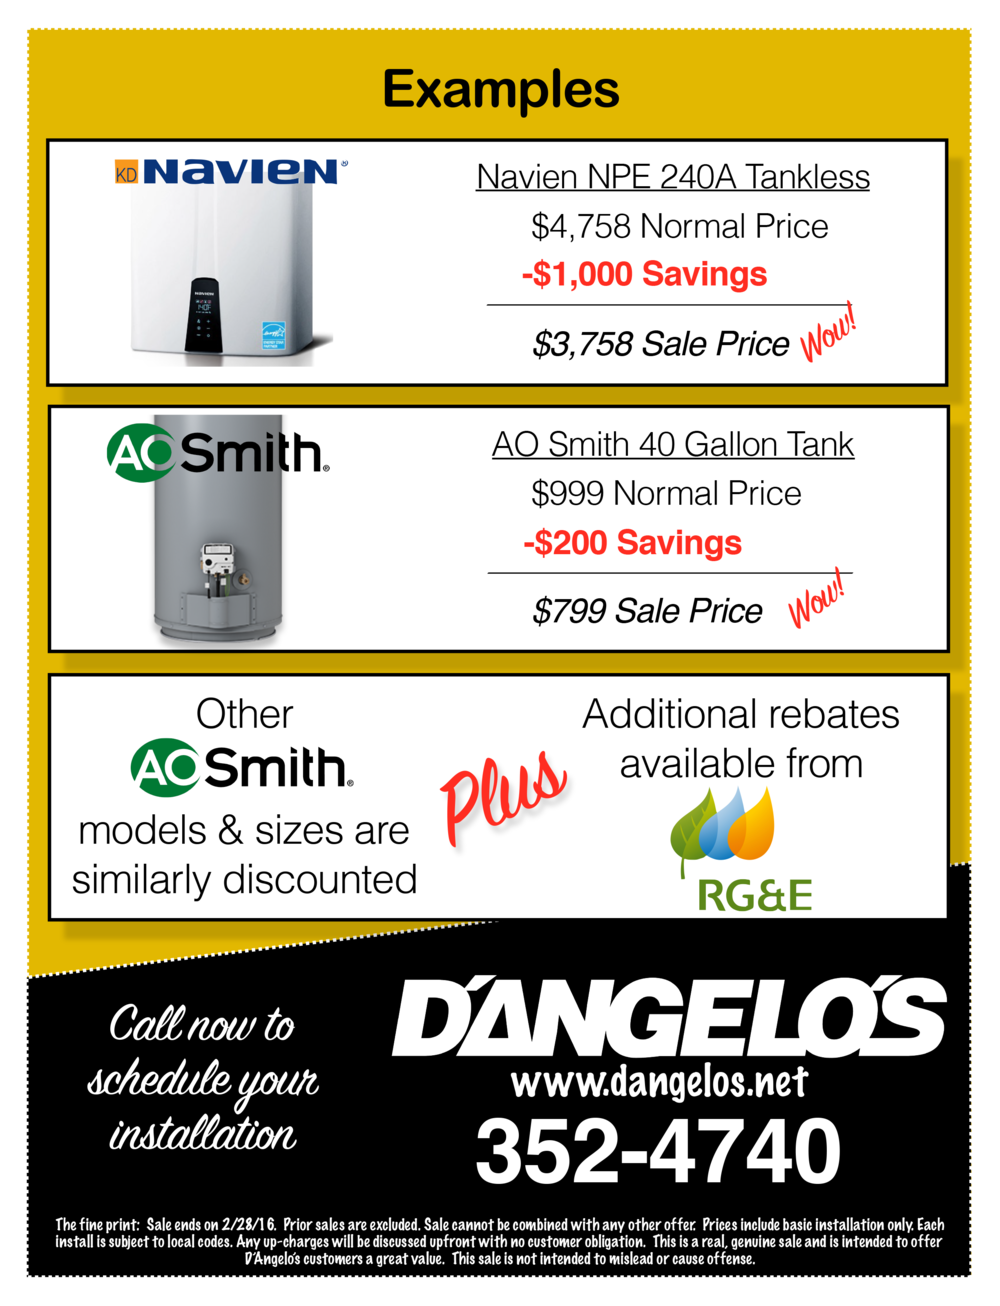 AO Smith and Navien Tankless water heaters